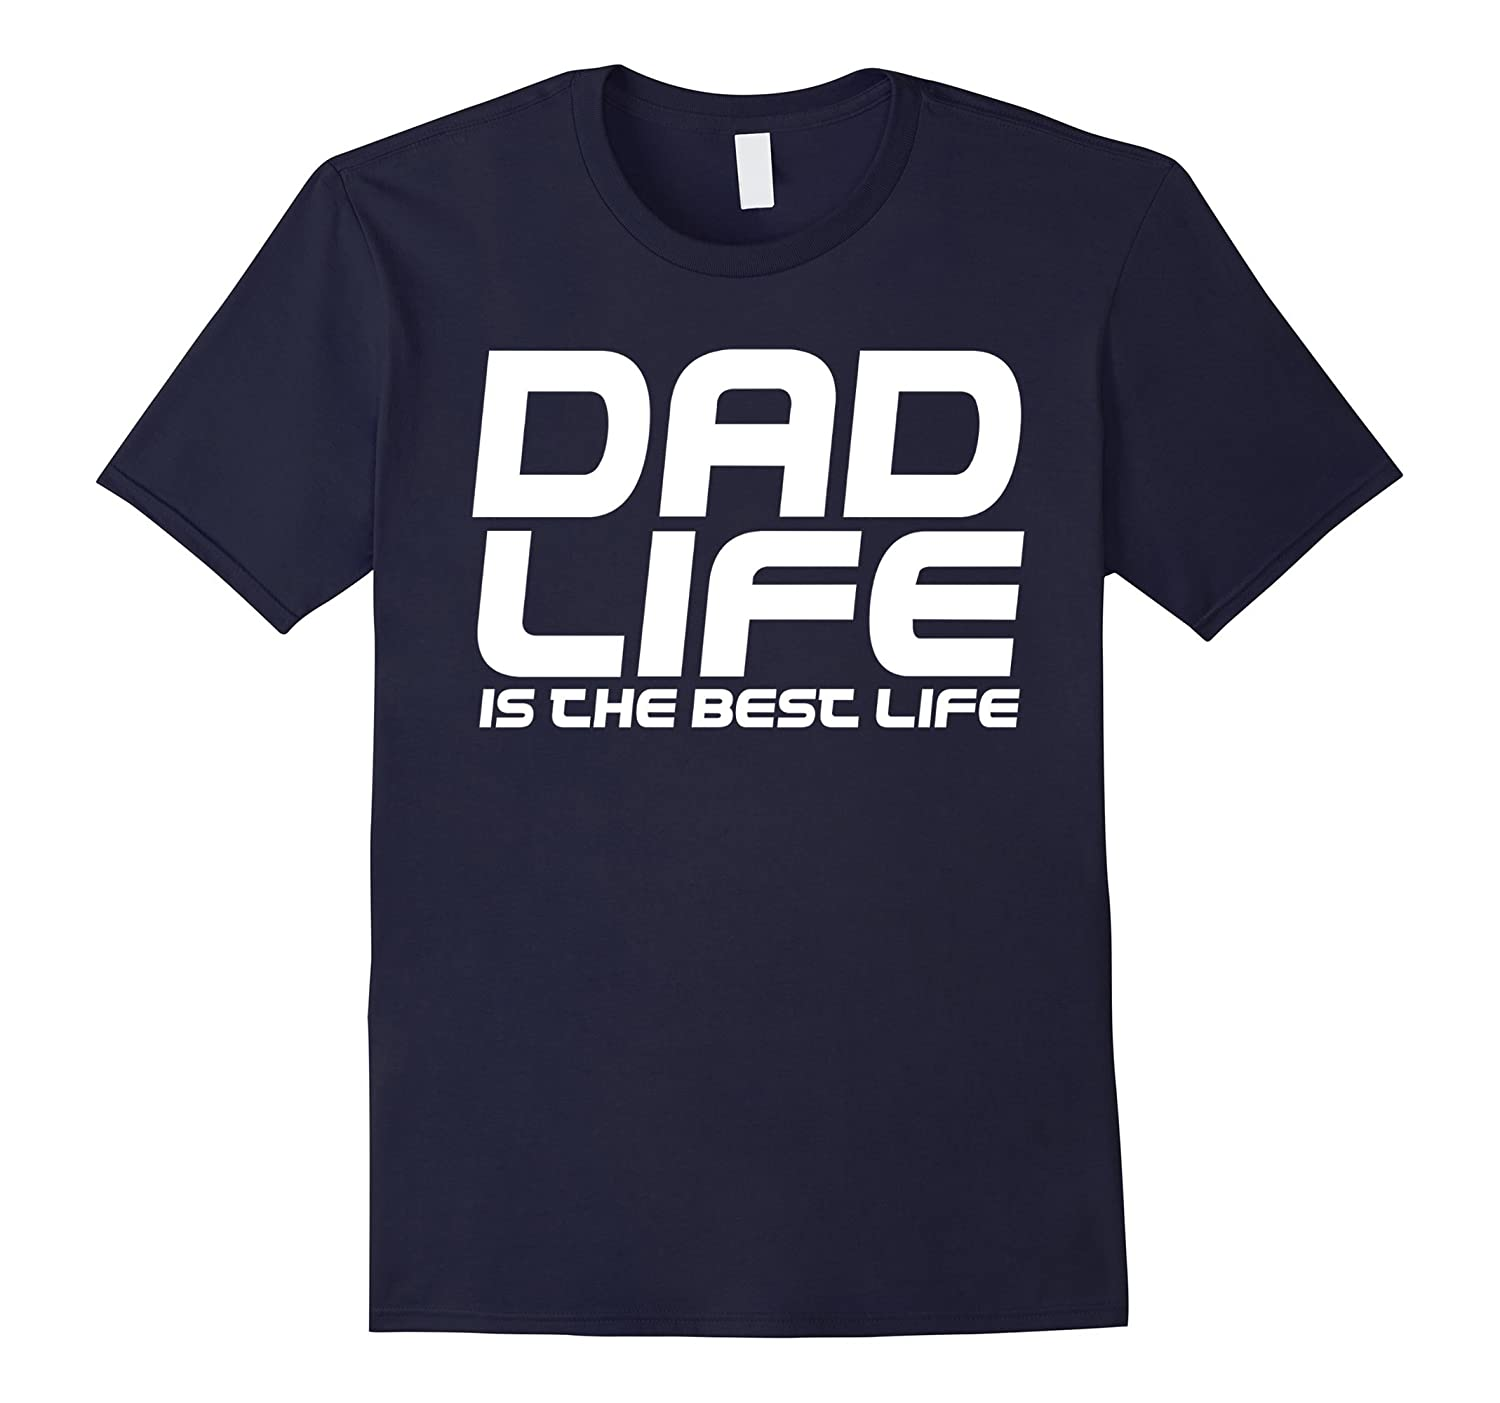 Awesome DAD LIFE IS THE BEST LIFE t-shirt dads gift gifts-Vaci